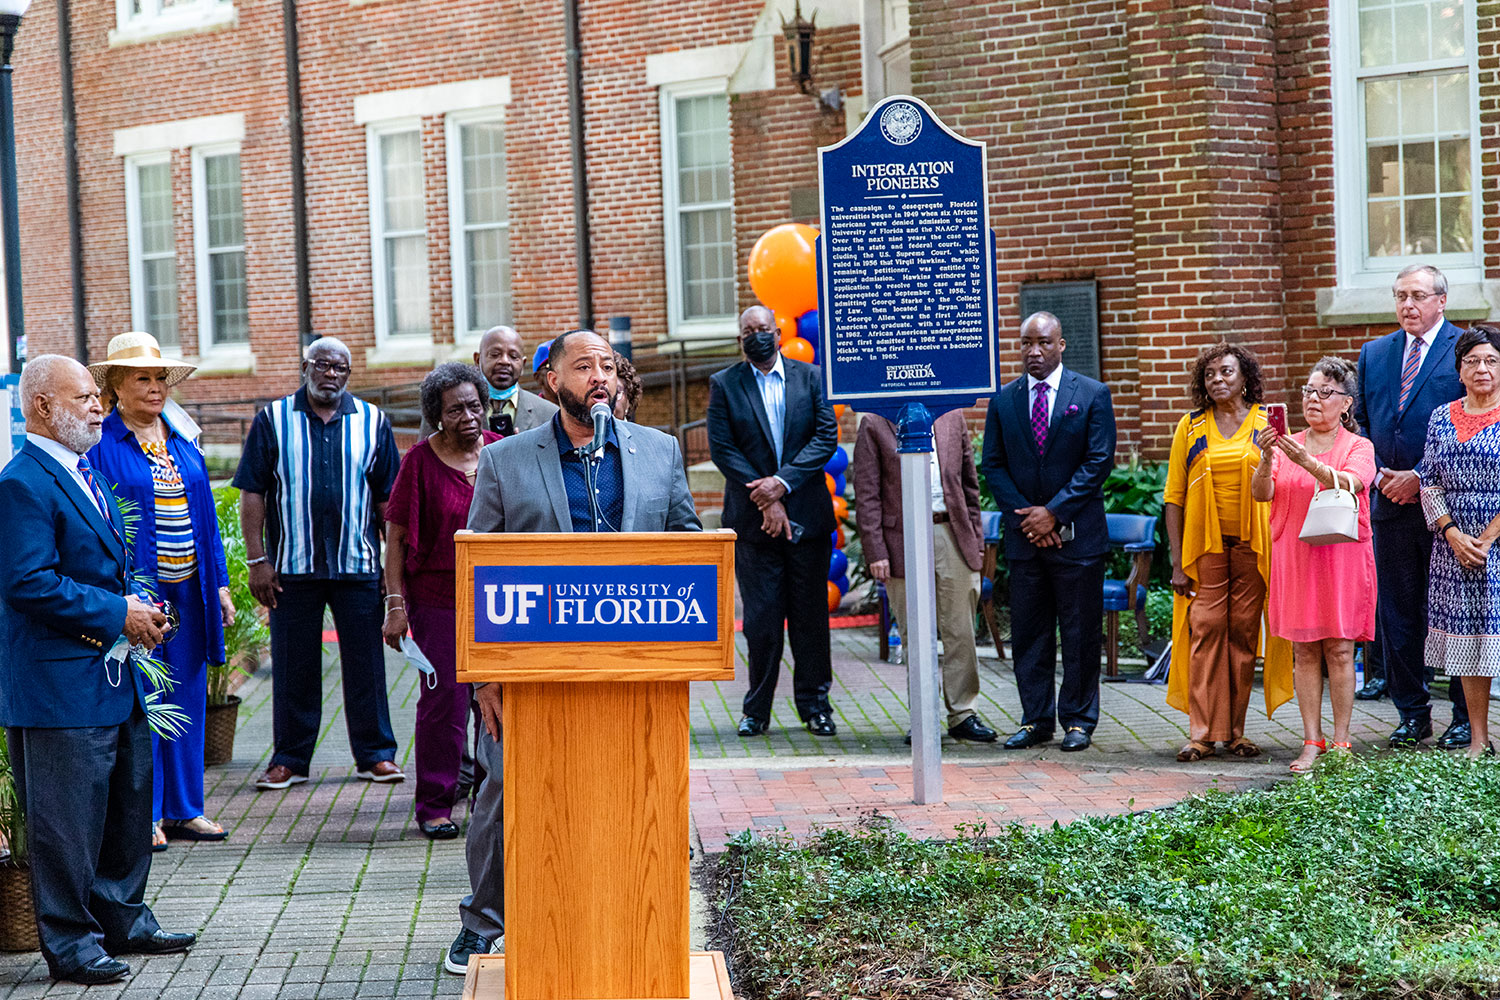 Picture of ceremony introducing new Integration Pioneers marker at UF